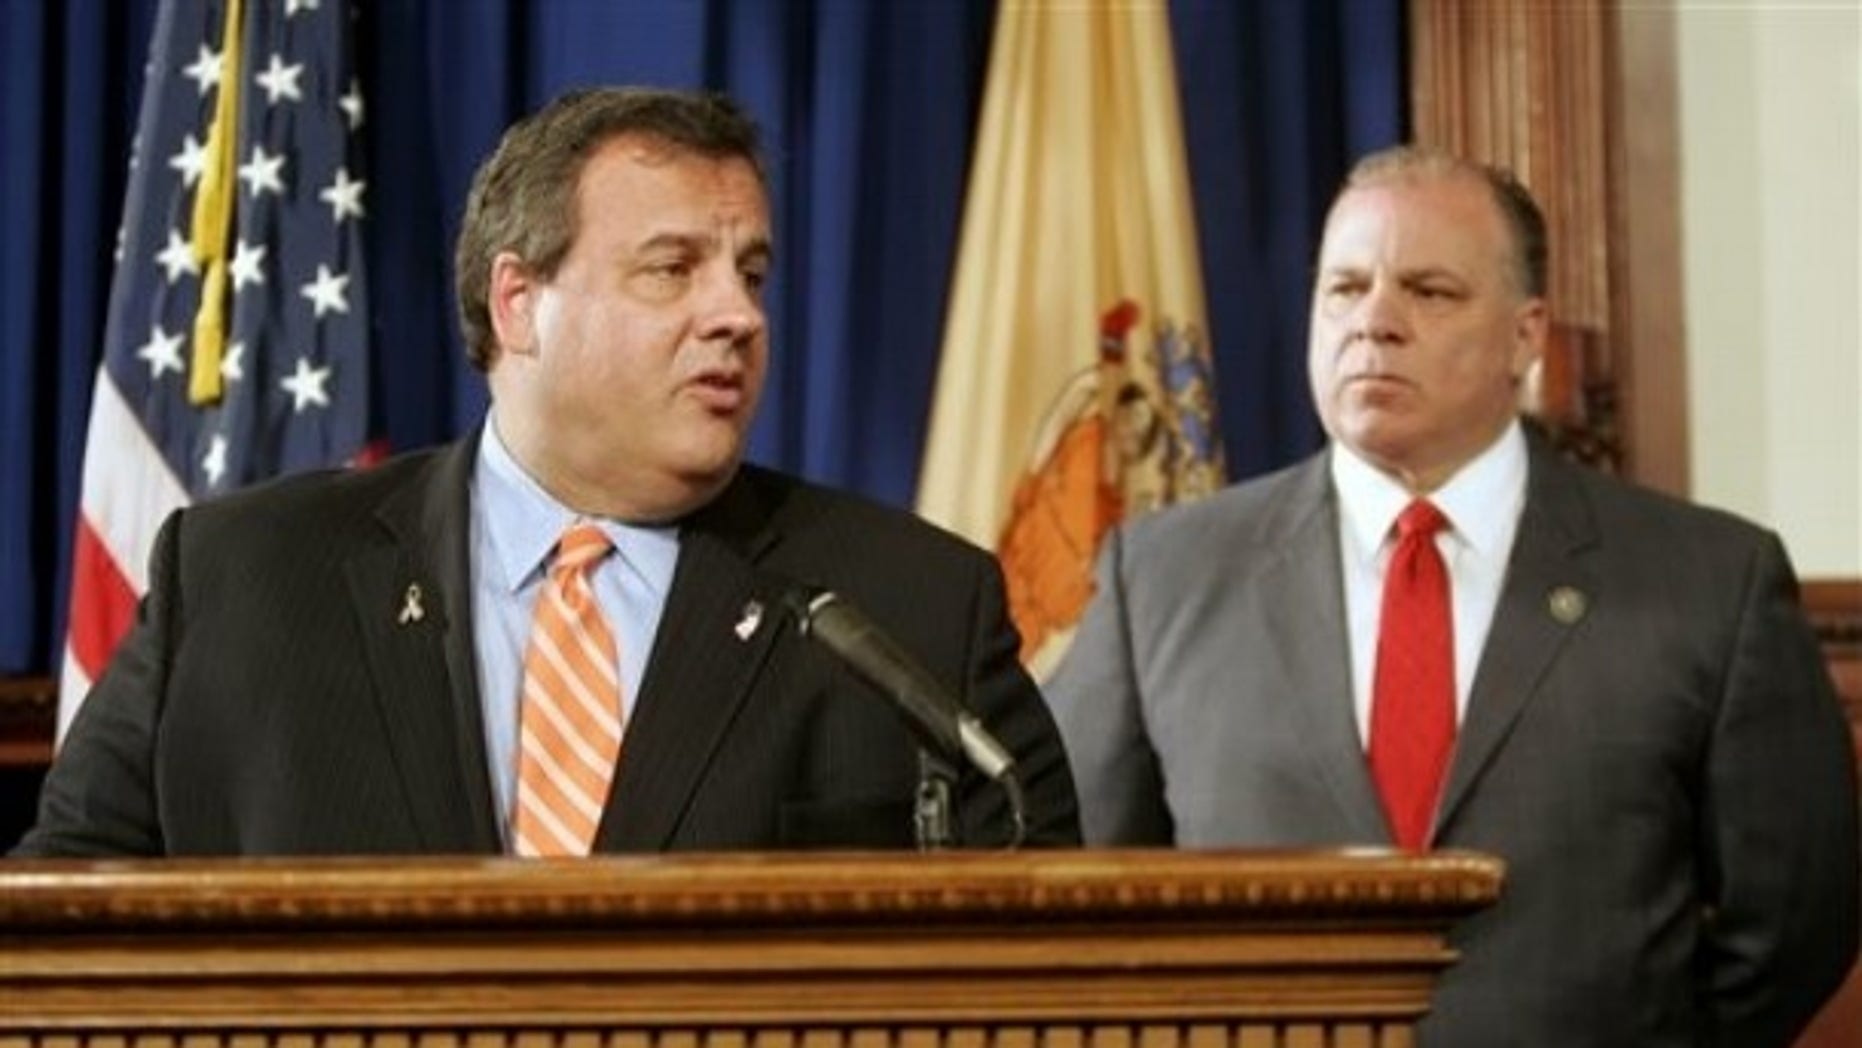 FILE: In this May, 2, 2011, photo, New Jersey Gov. Chris Christie and Senate President Stephen M. Sweeney discuss Supreme Court vacancies. They are now working together on health benefits contributions from state workers.